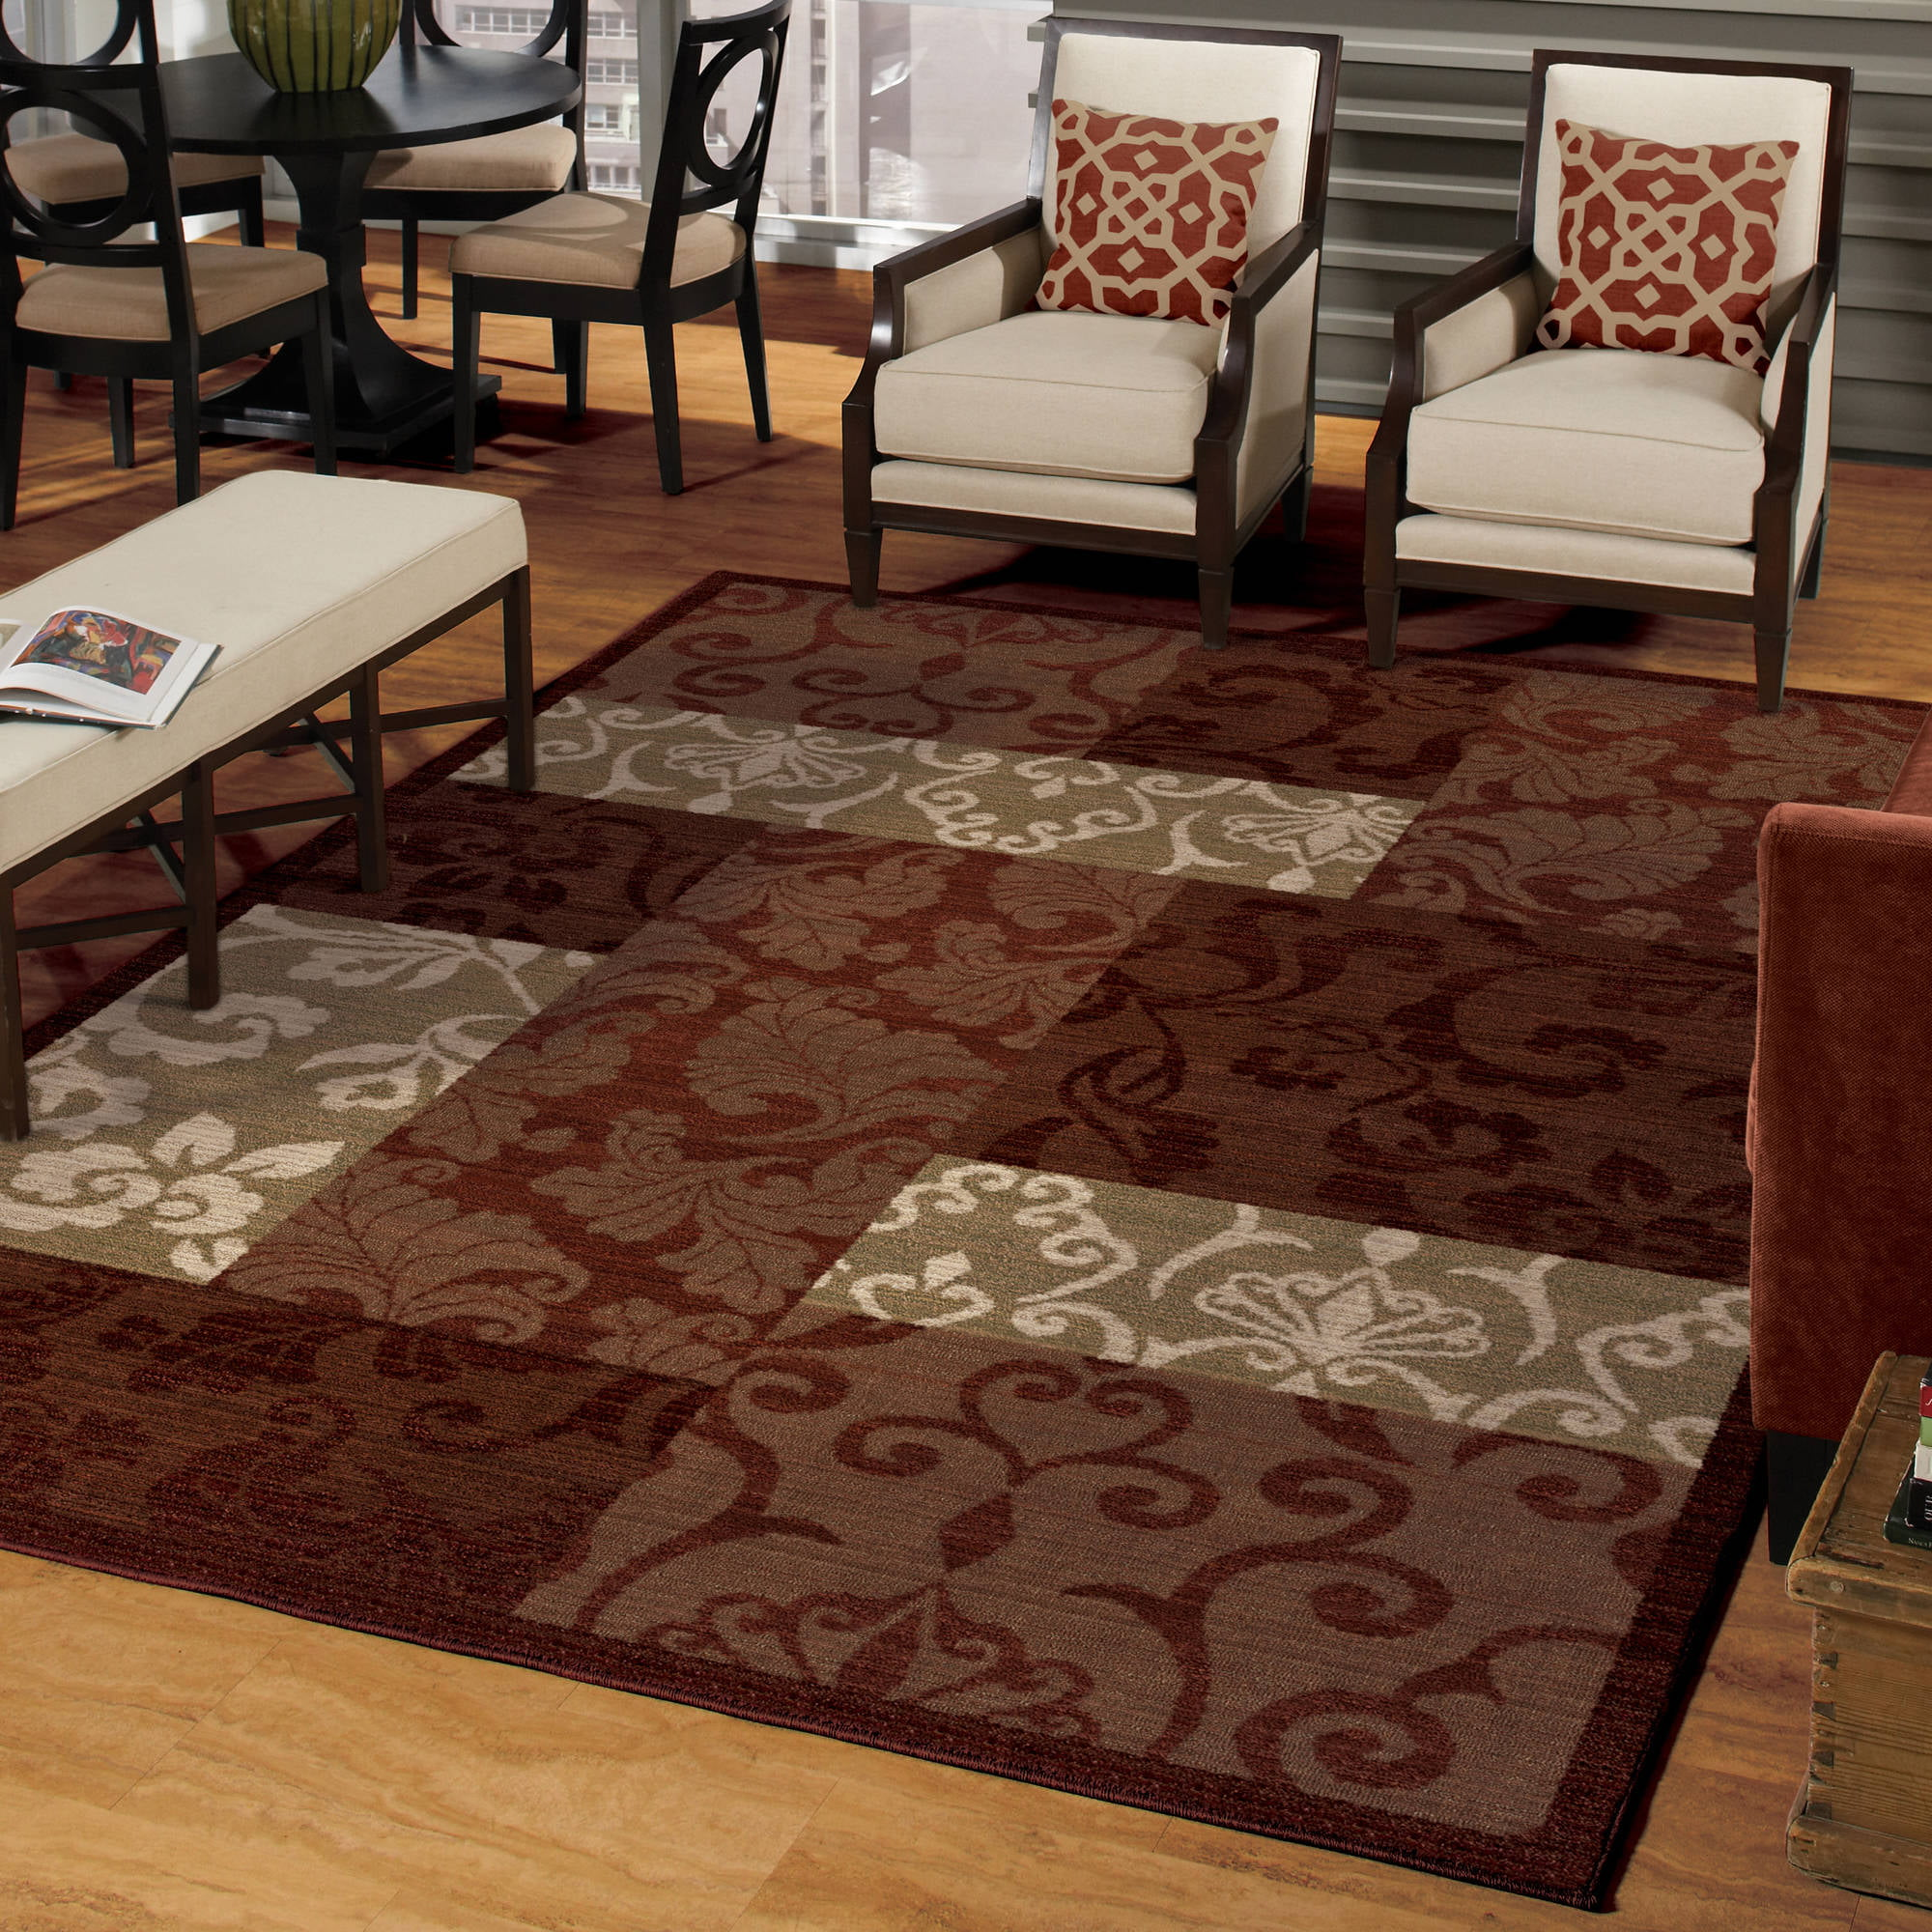 Better Homes And Gardens Scroll Patchwork Area Rug Or Runner Com